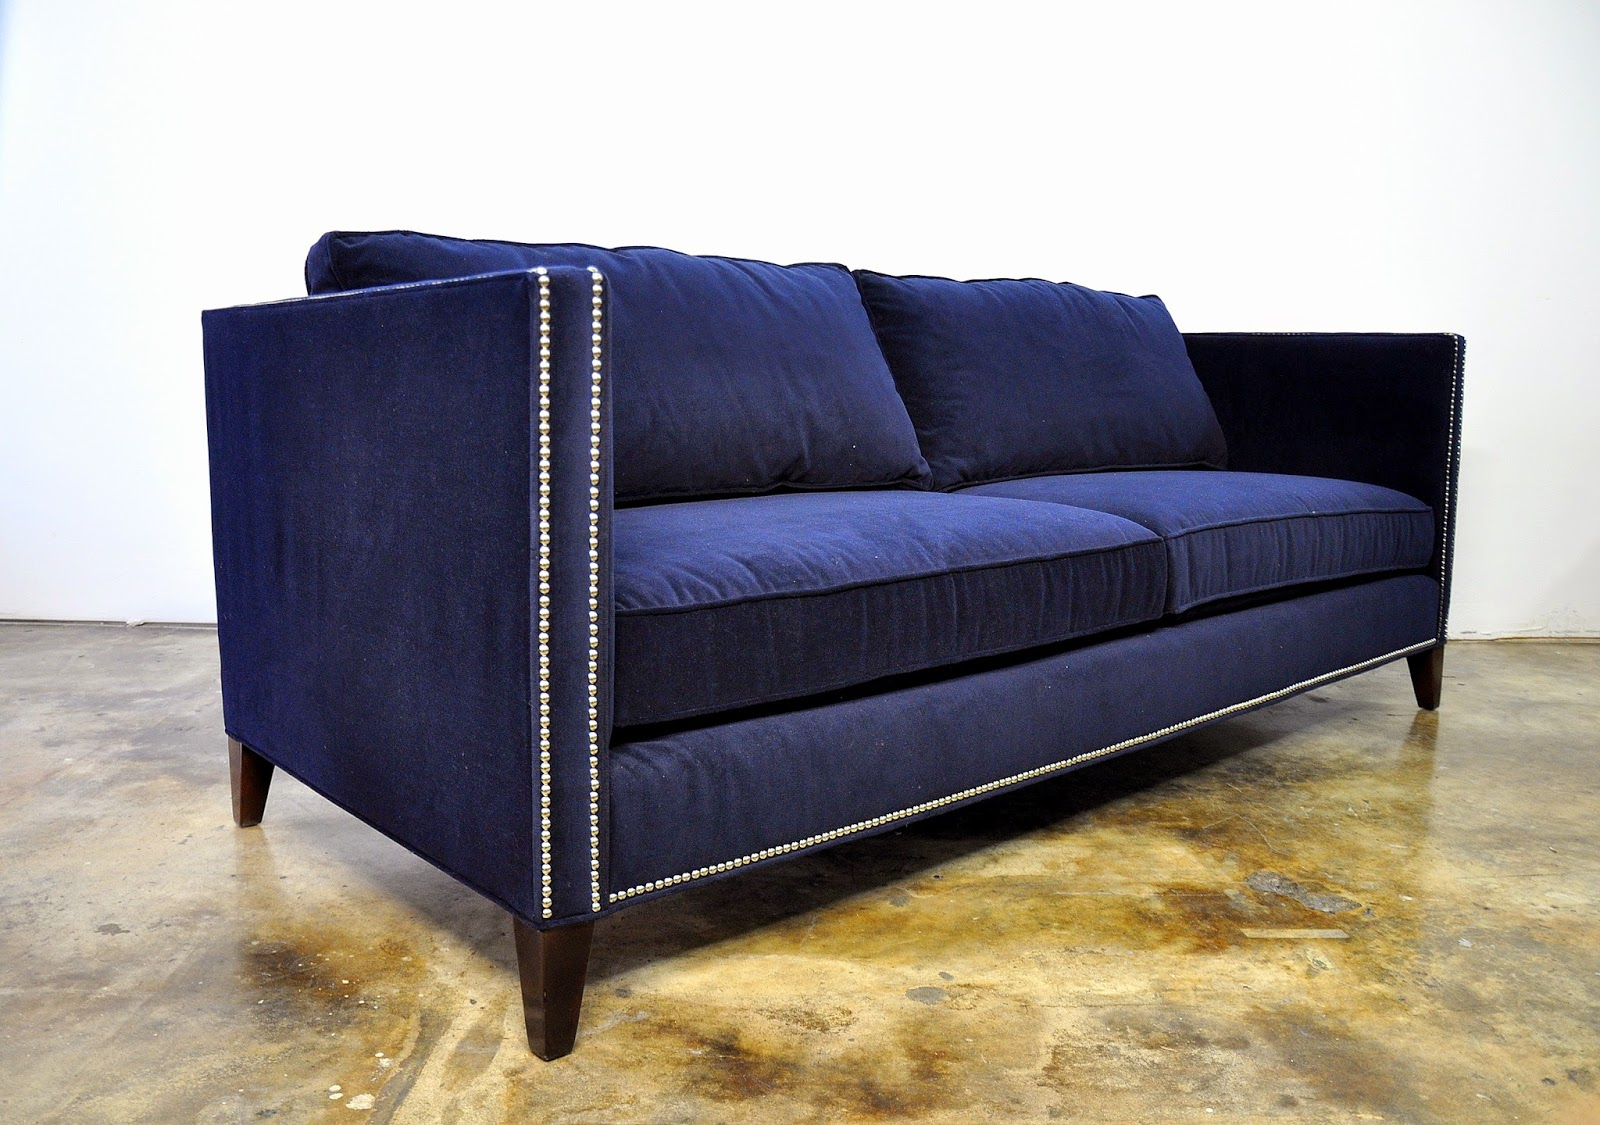 mitc gold and bob williams sofa milano sectional ottoman by acme furniture select modern mitchell 43